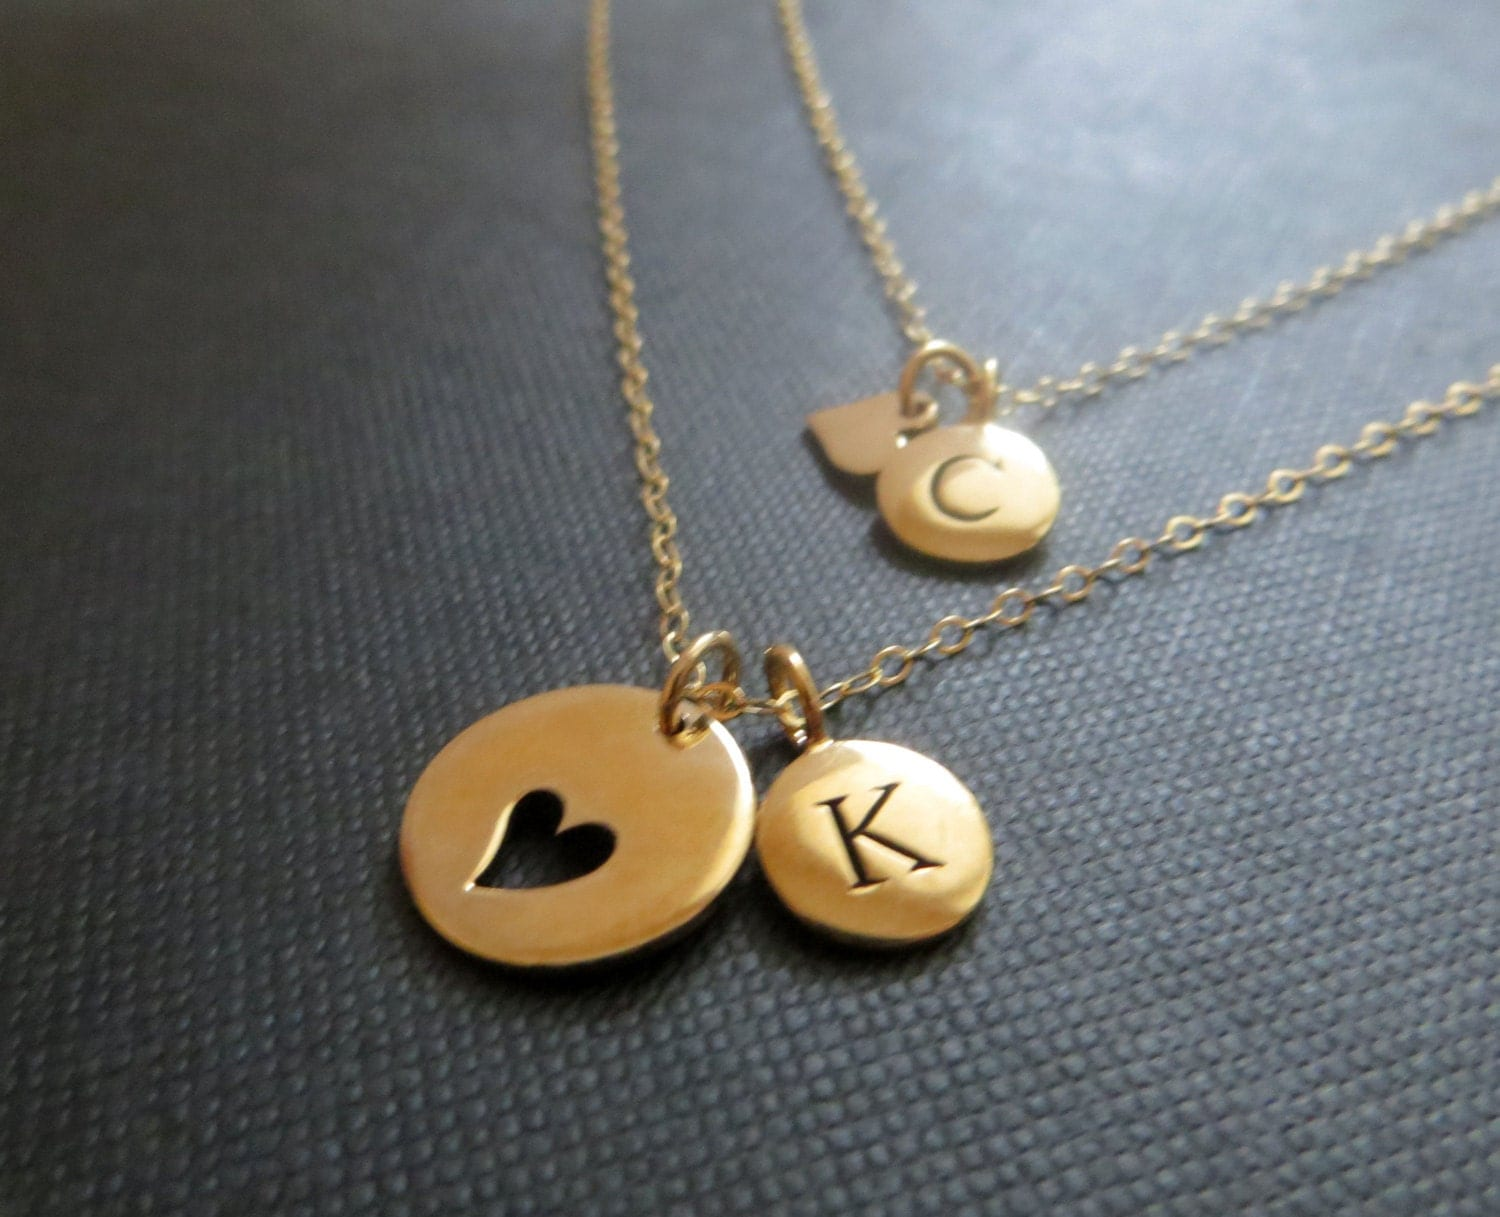 personalized jewelry mother daughter initial necklace mother. Black Bedroom Furniture Sets. Home Design Ideas